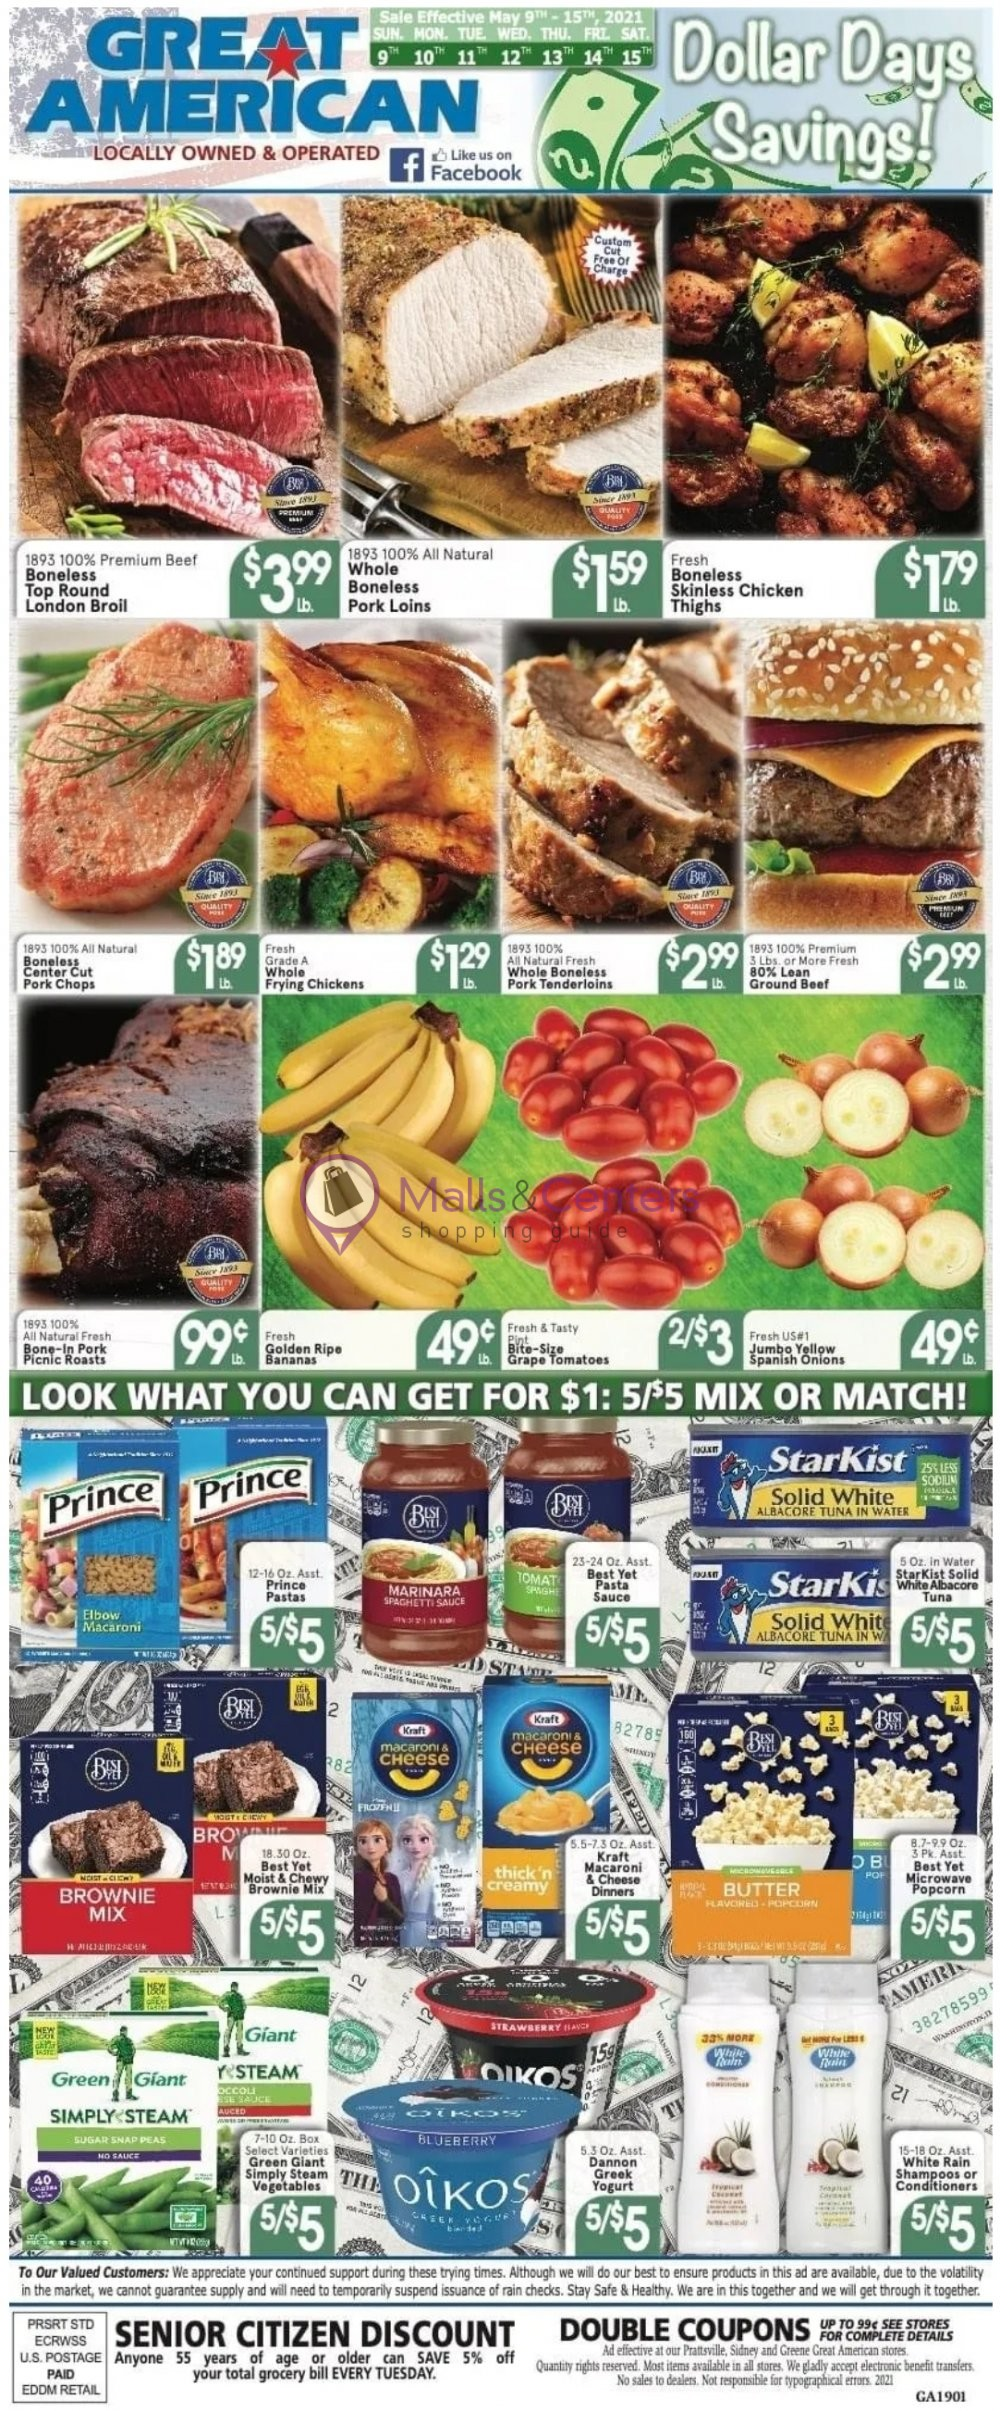 weekly ads Great American Food Stores - page 1 - mallscenters.com